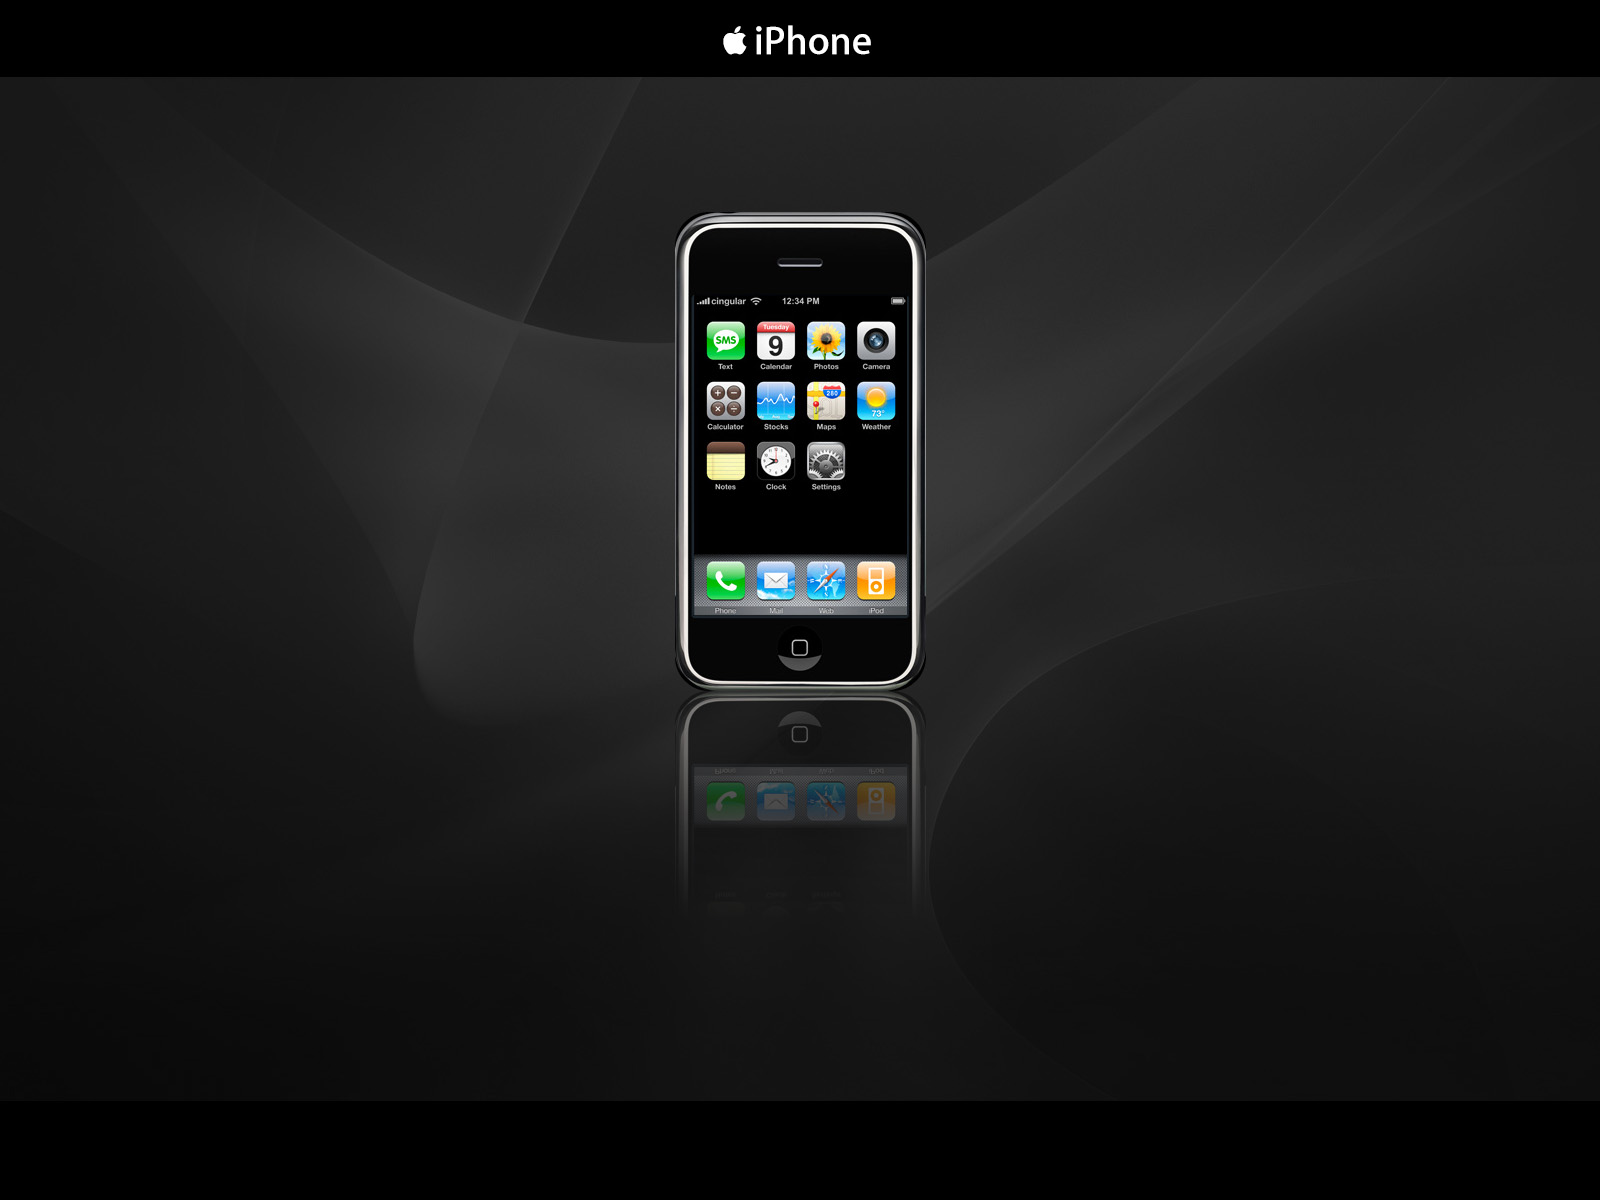 iphone wallpapers backgrounds and themes download iphone 1600x1200